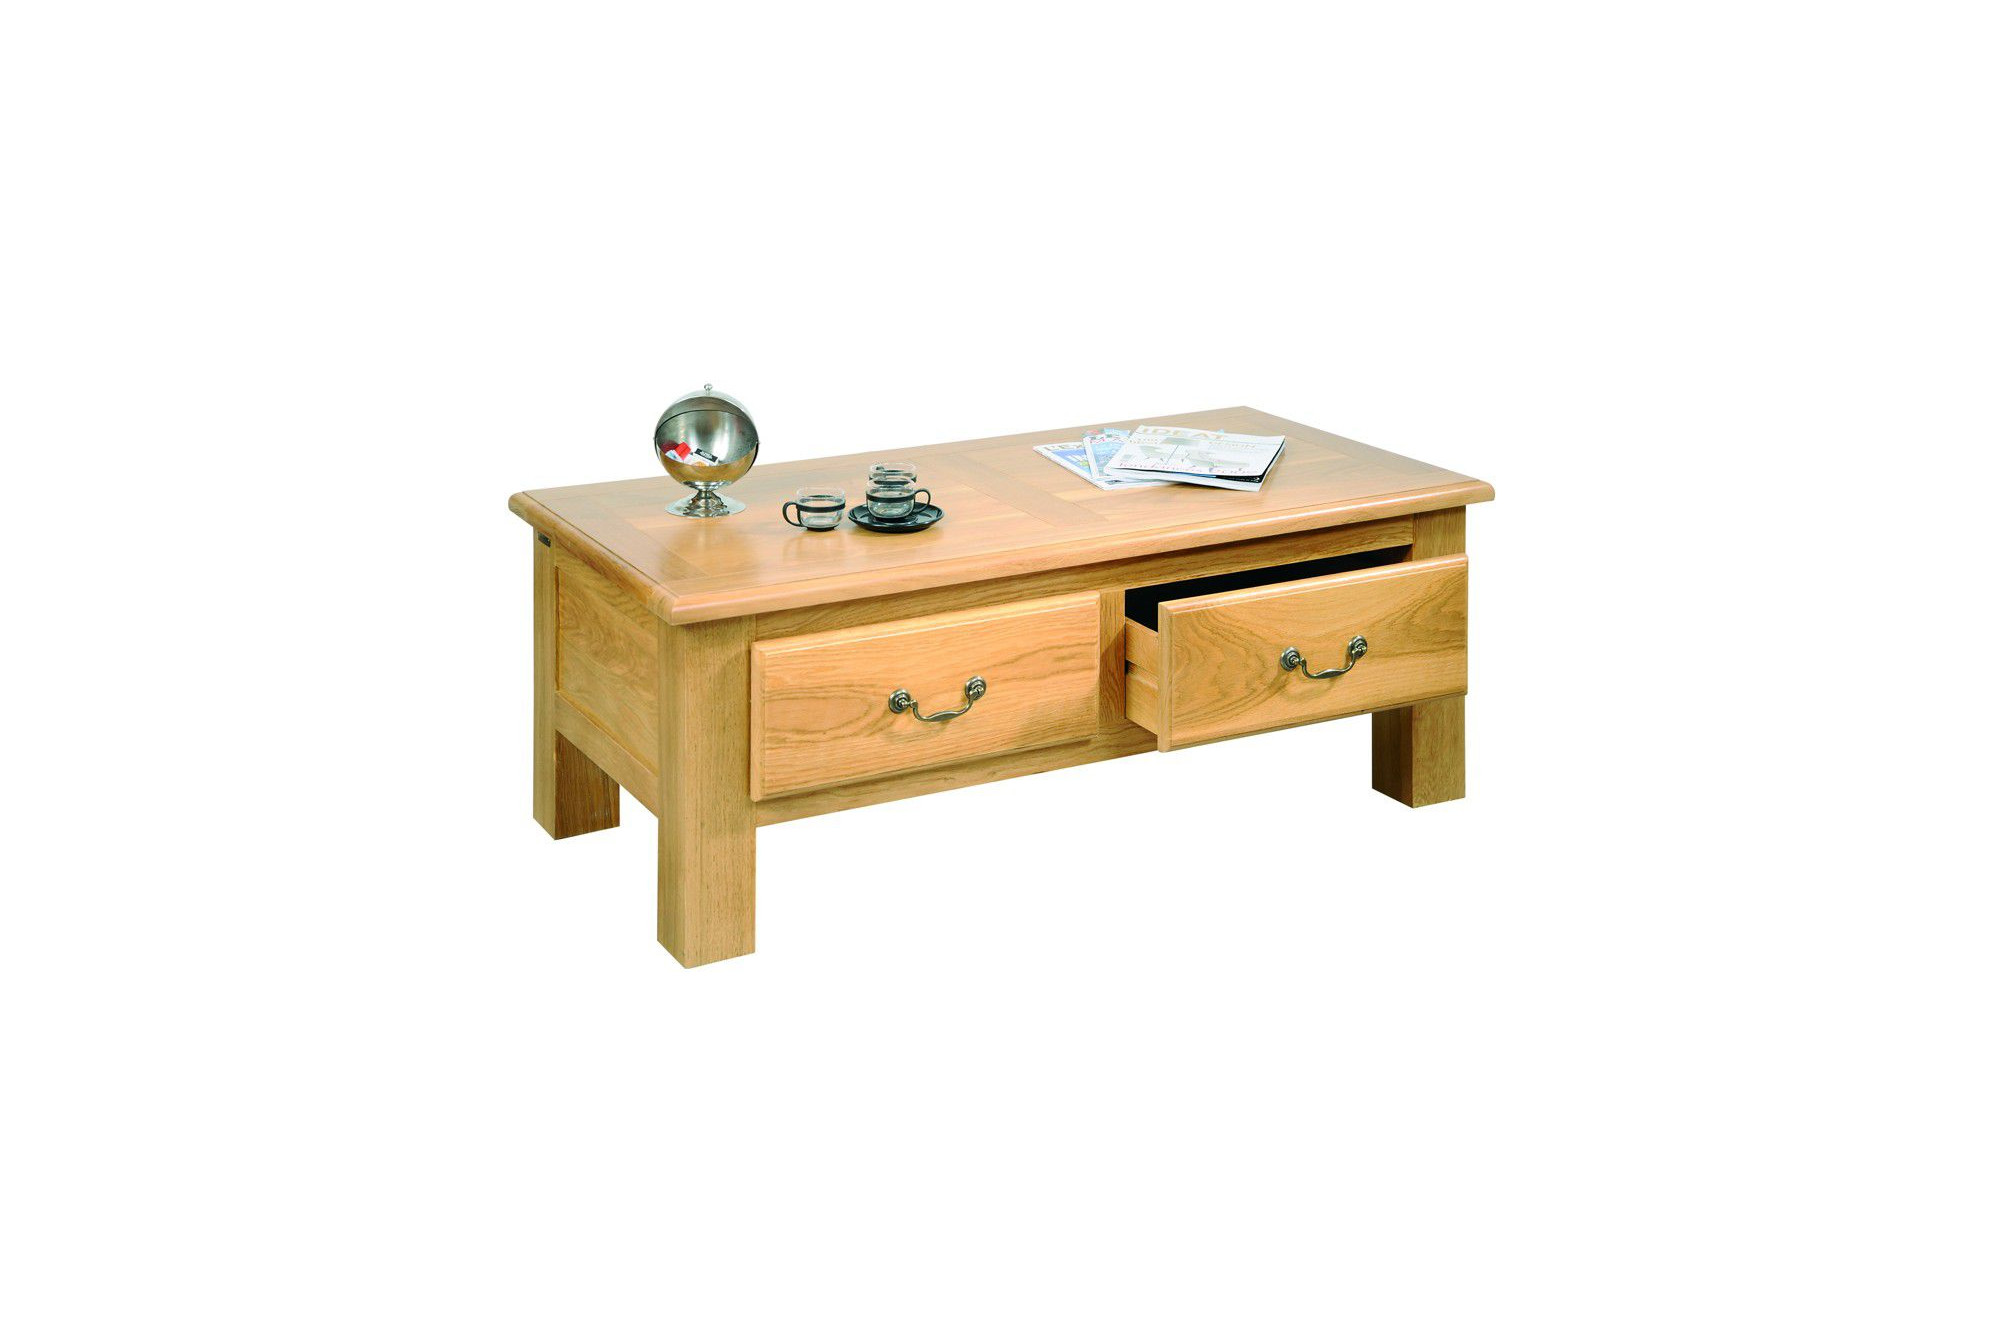 Table Basse Chene Massif Table Basse Chene Massif Meuble D Occasion Hellin